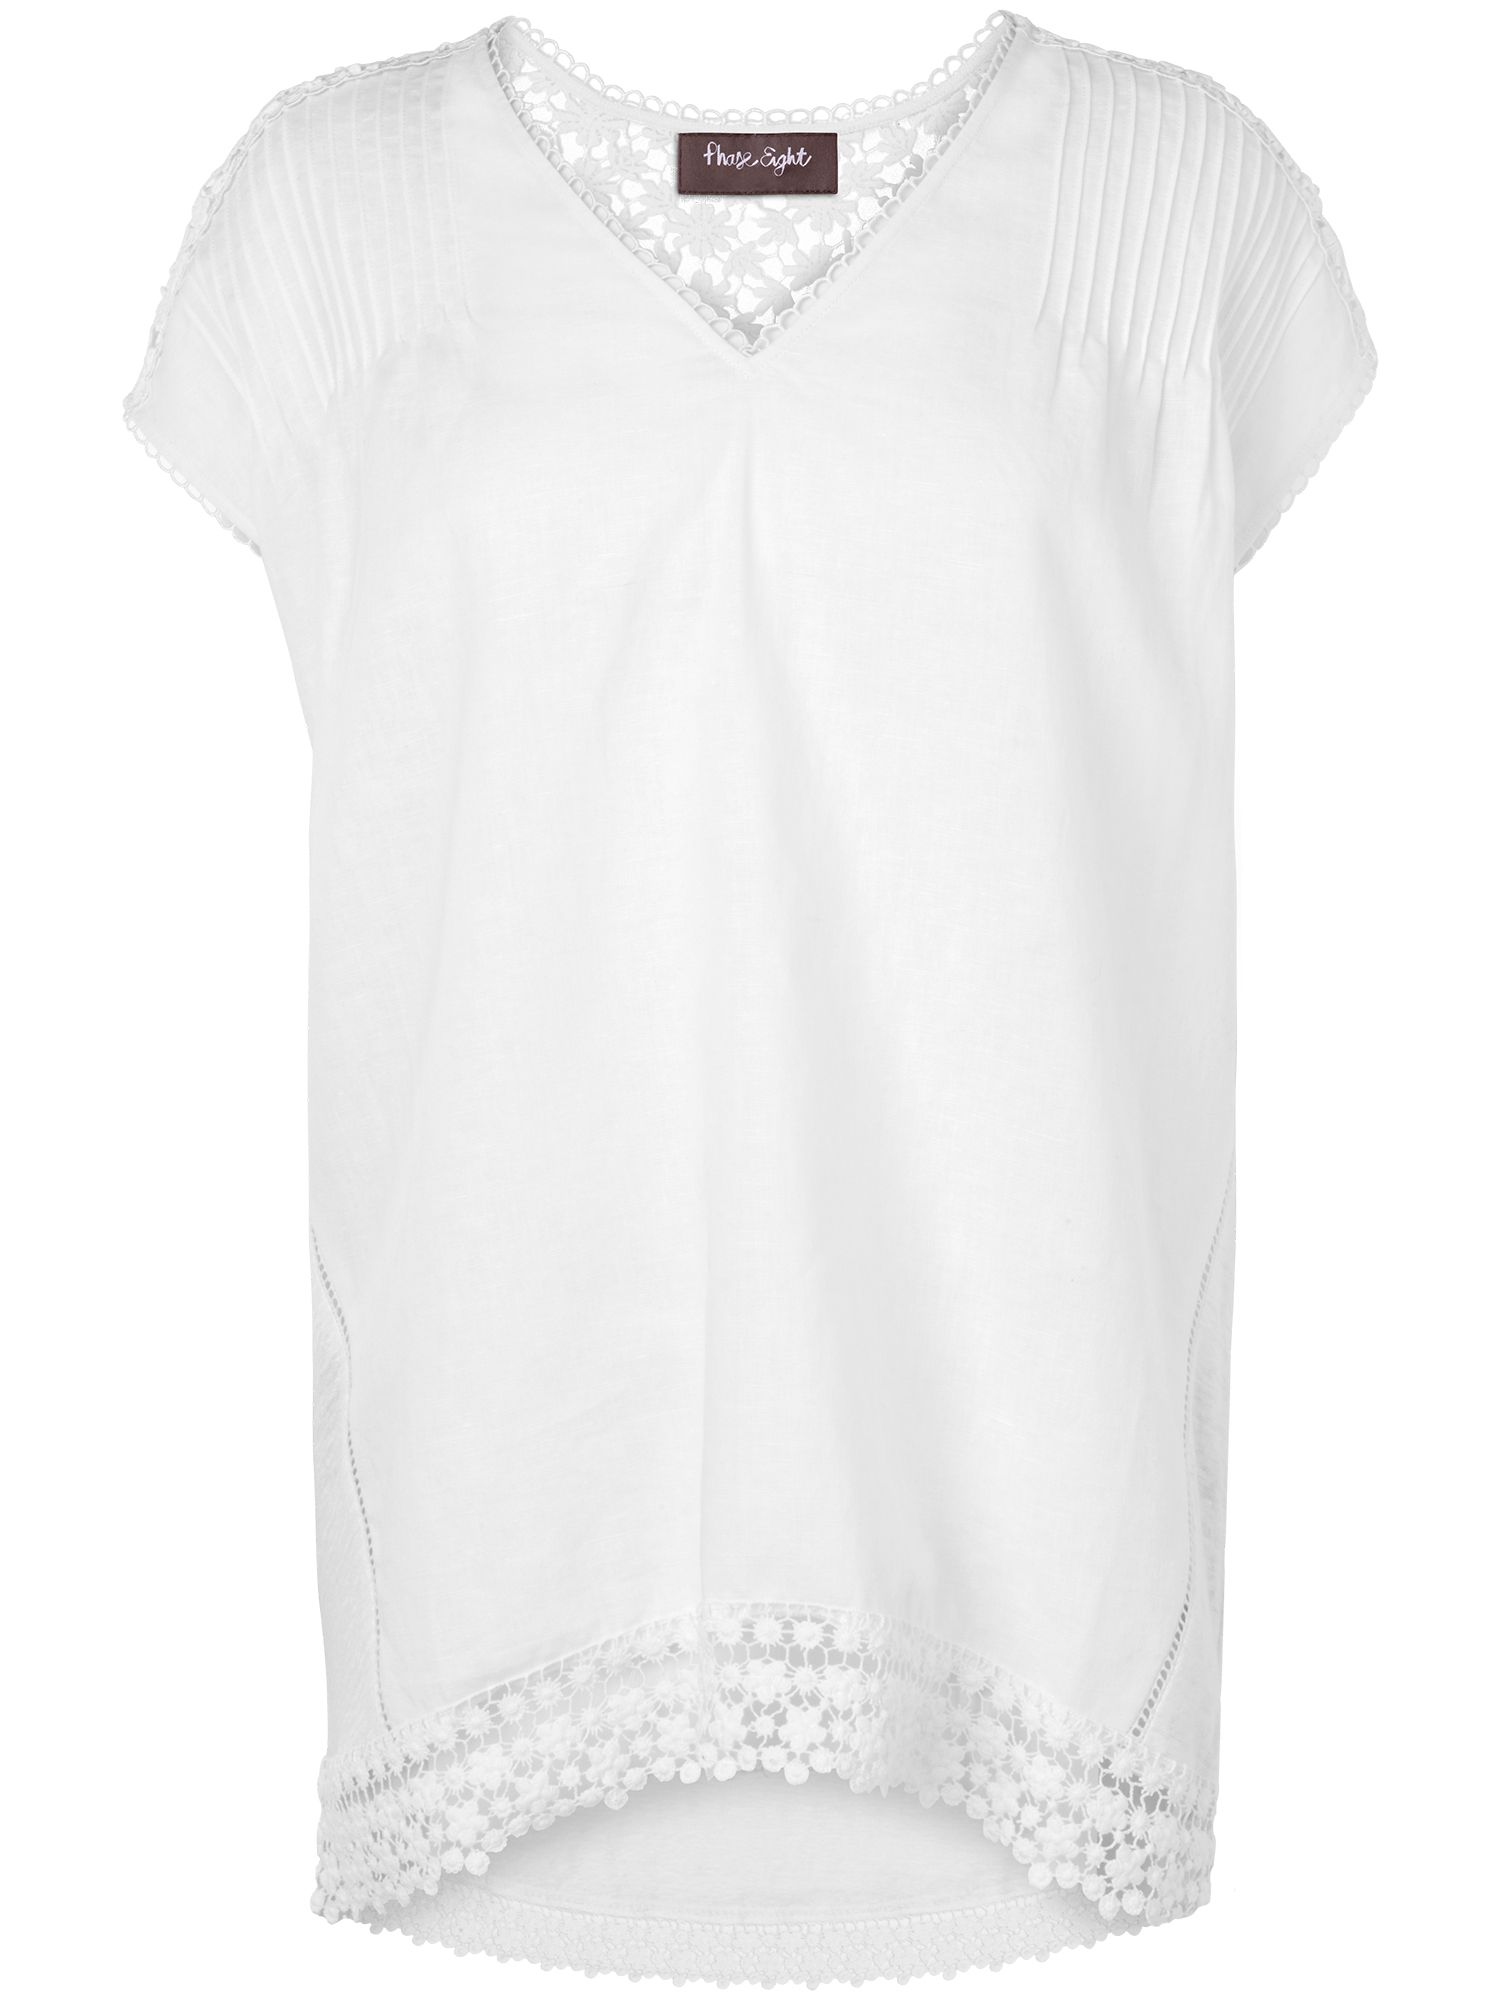 Kerry linen crochet blouse